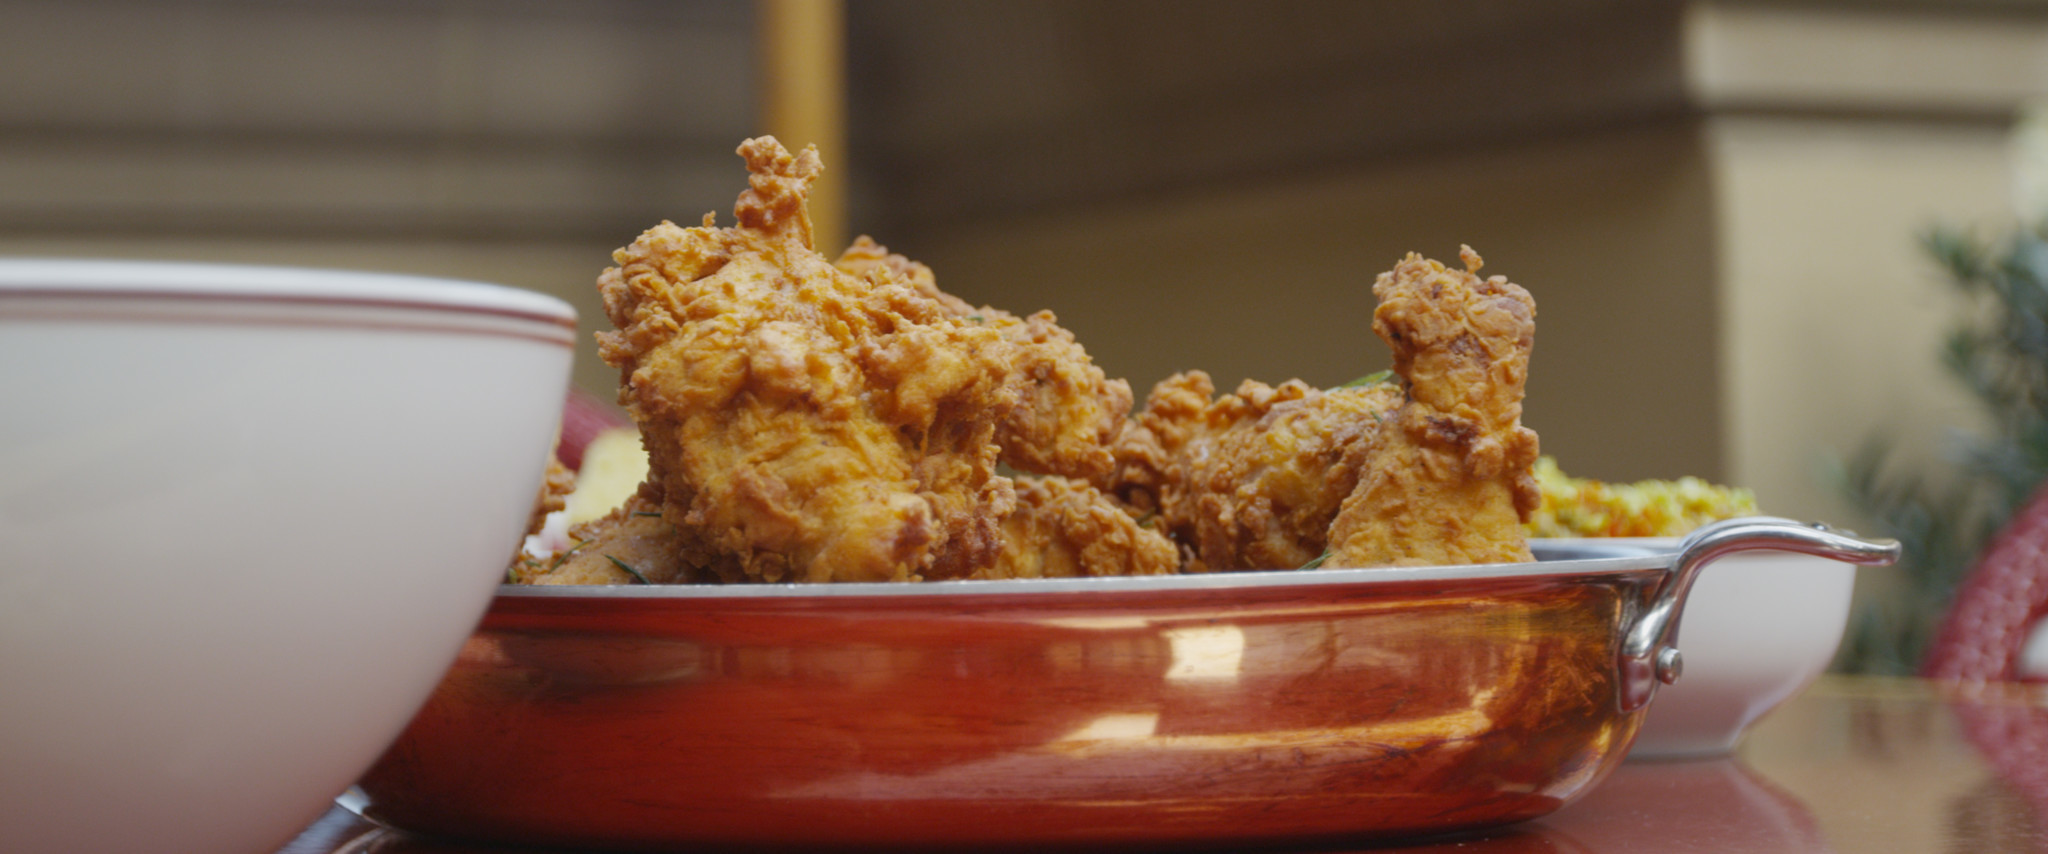 Fabuleux Fried chicken at Bouchon Bistro - LA Times KP04